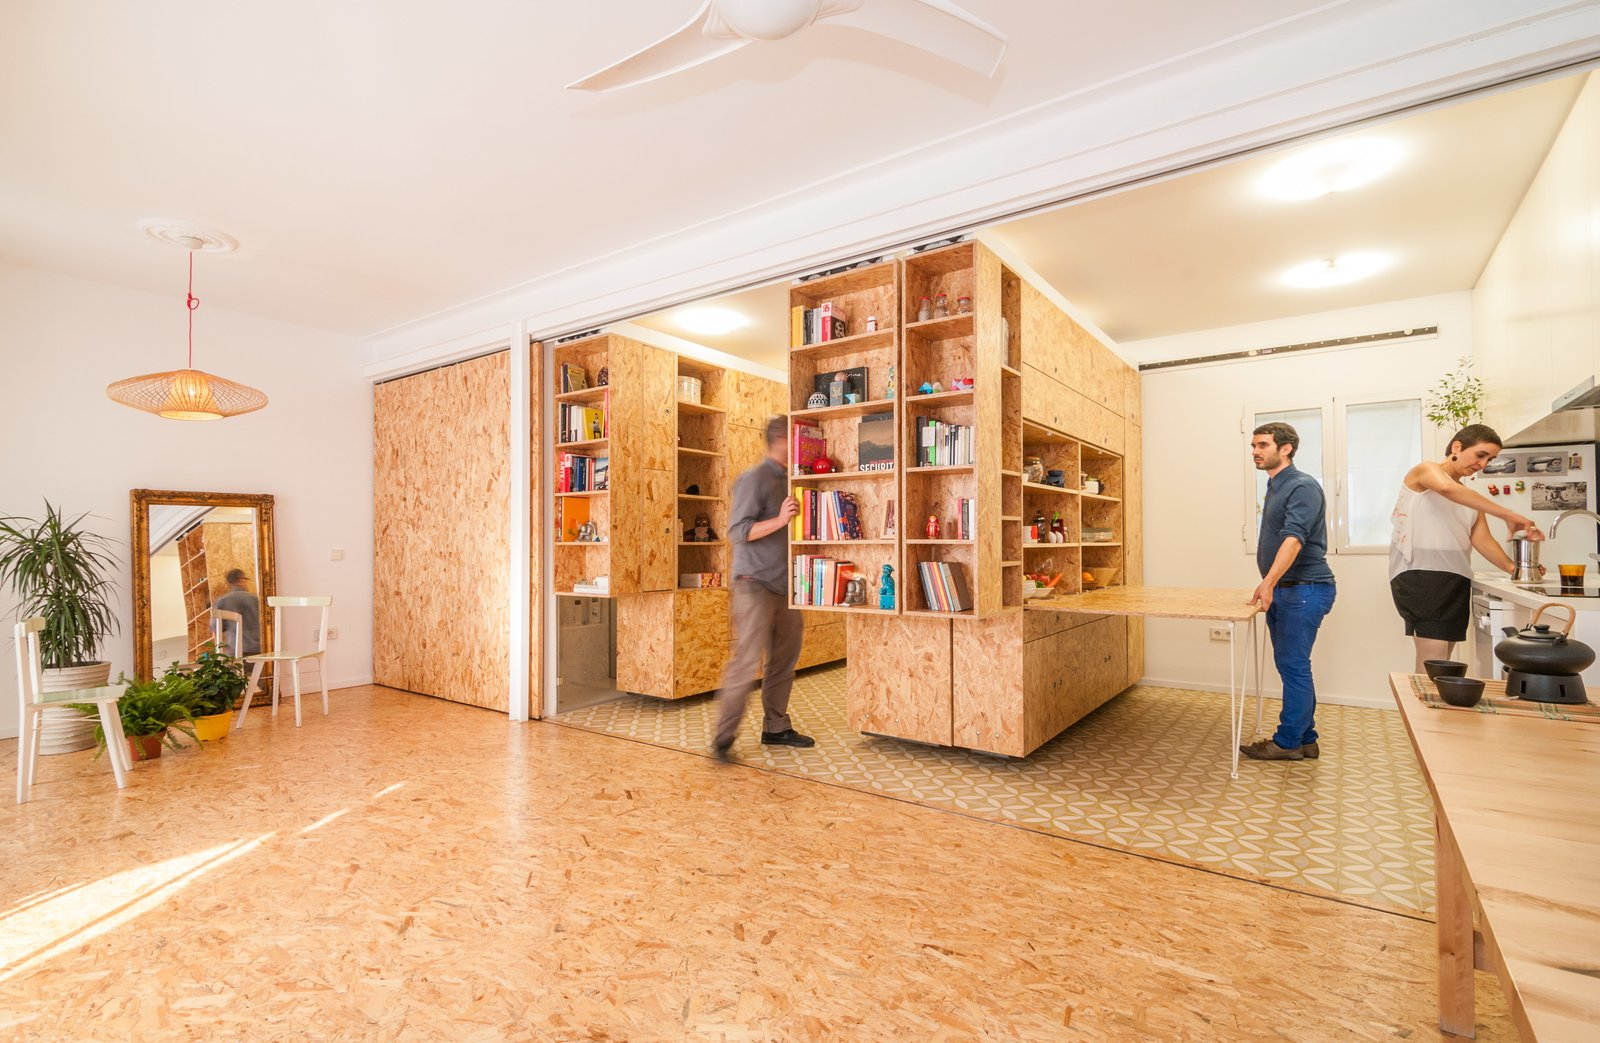 11 Transforming Apartments That Make the Most of Minuscule Spaces